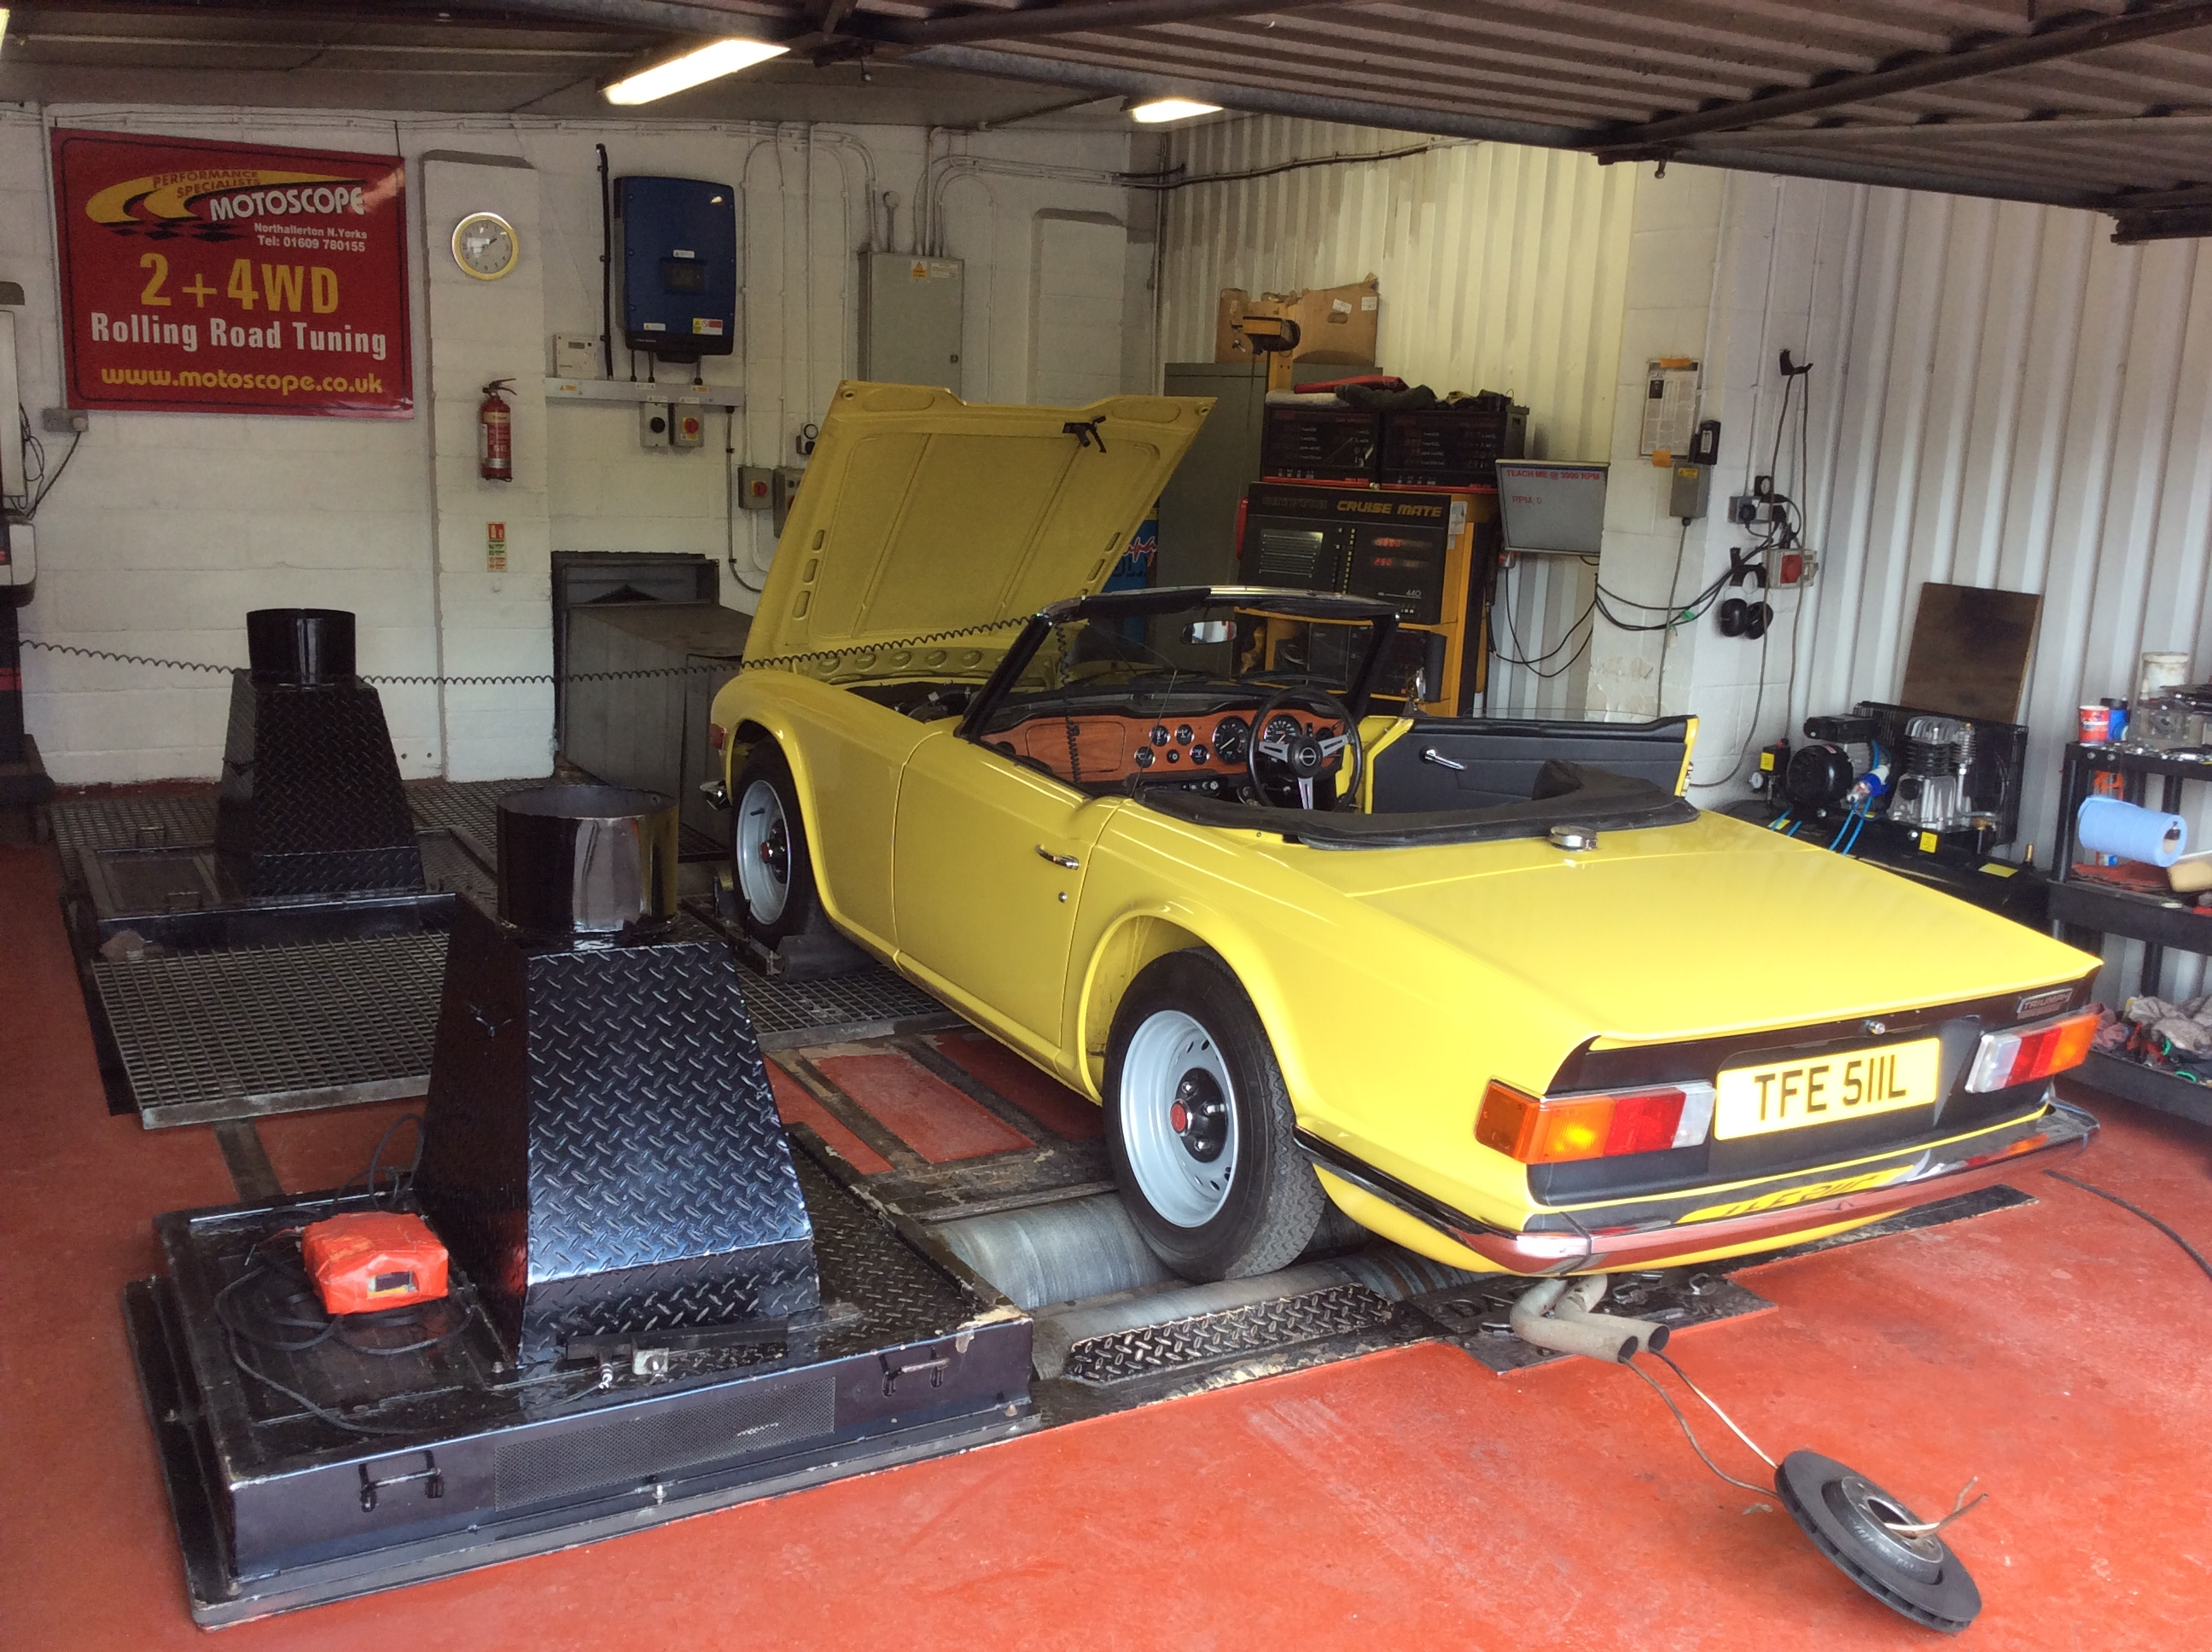 TR6 Rolling Road